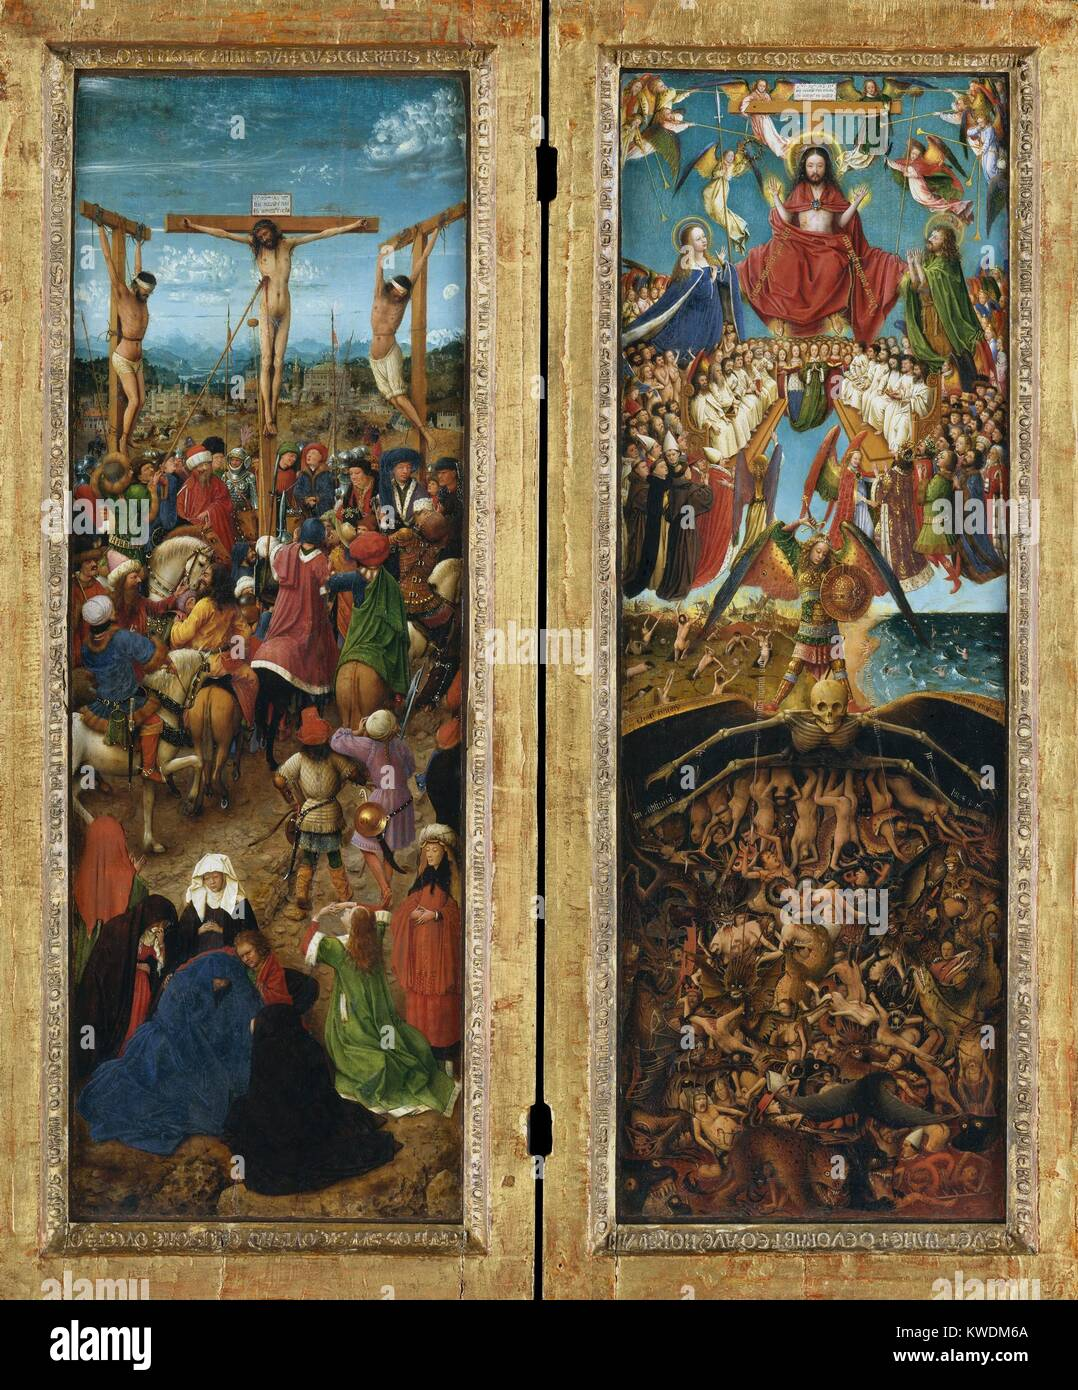 THE CRUCIFIXION, THE LAST JUDGMENT, by Jan van Eyck, 1440-41, Northern Renaissance painting. In this masterpiece Stock Photo